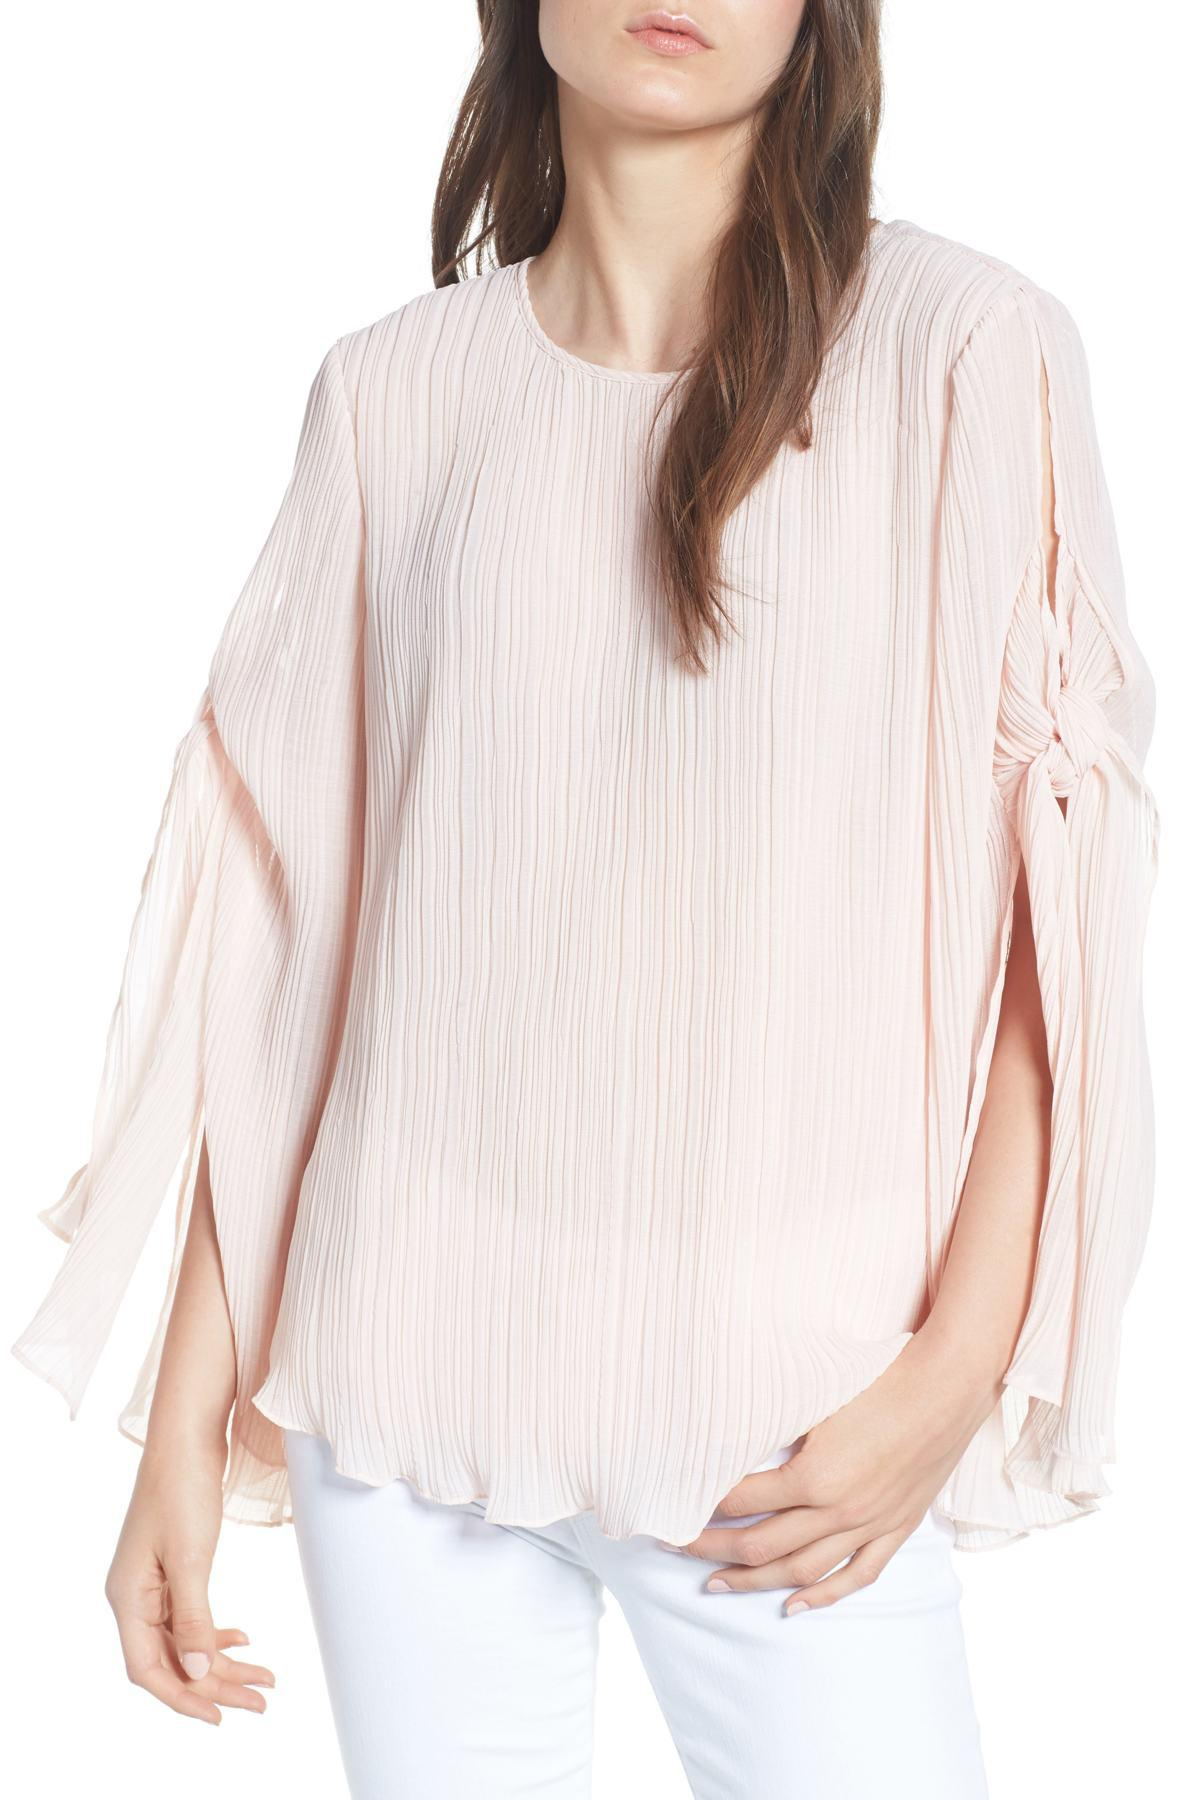 d04f3848359249 Lyst - Chelsea28 Pleated Tie Sleeve Top in Pink